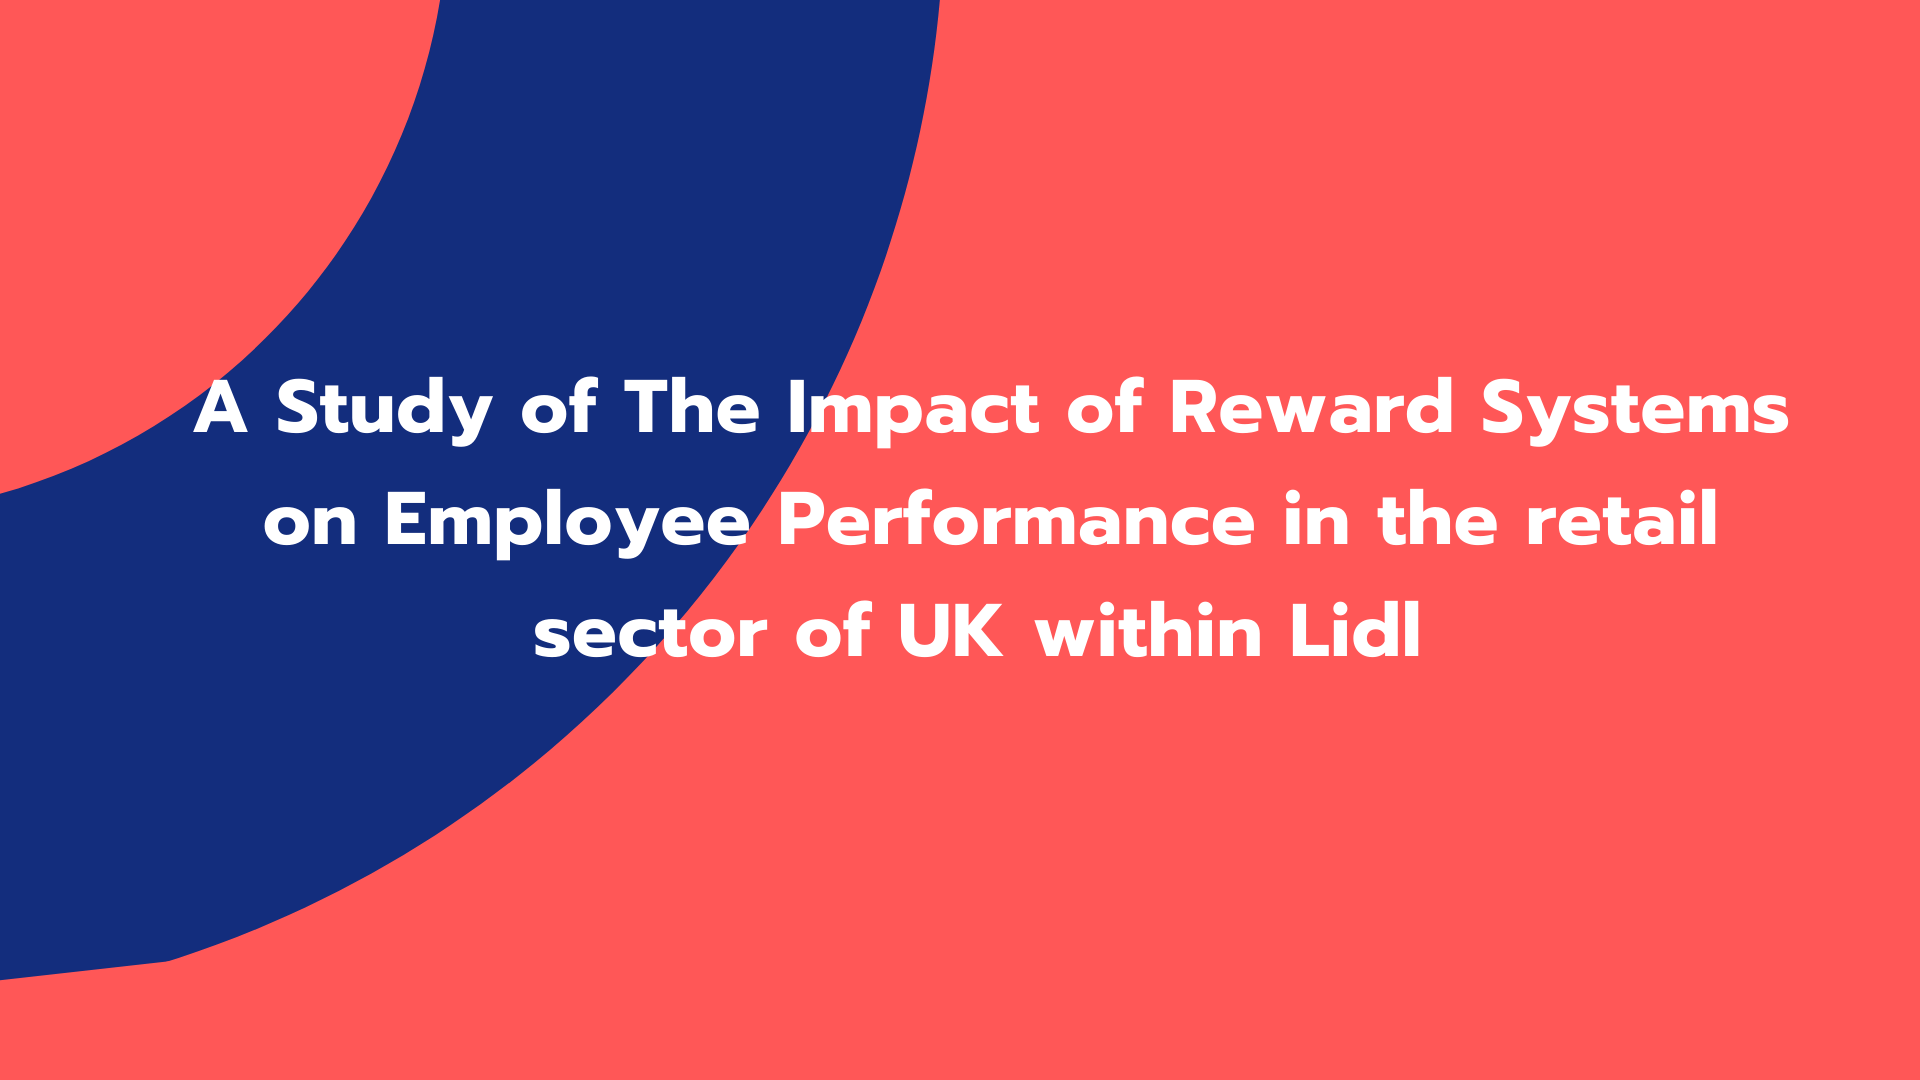 A Study of The Impact of Reward Systems on Employee Performance in the retail sector of UK within Lidl